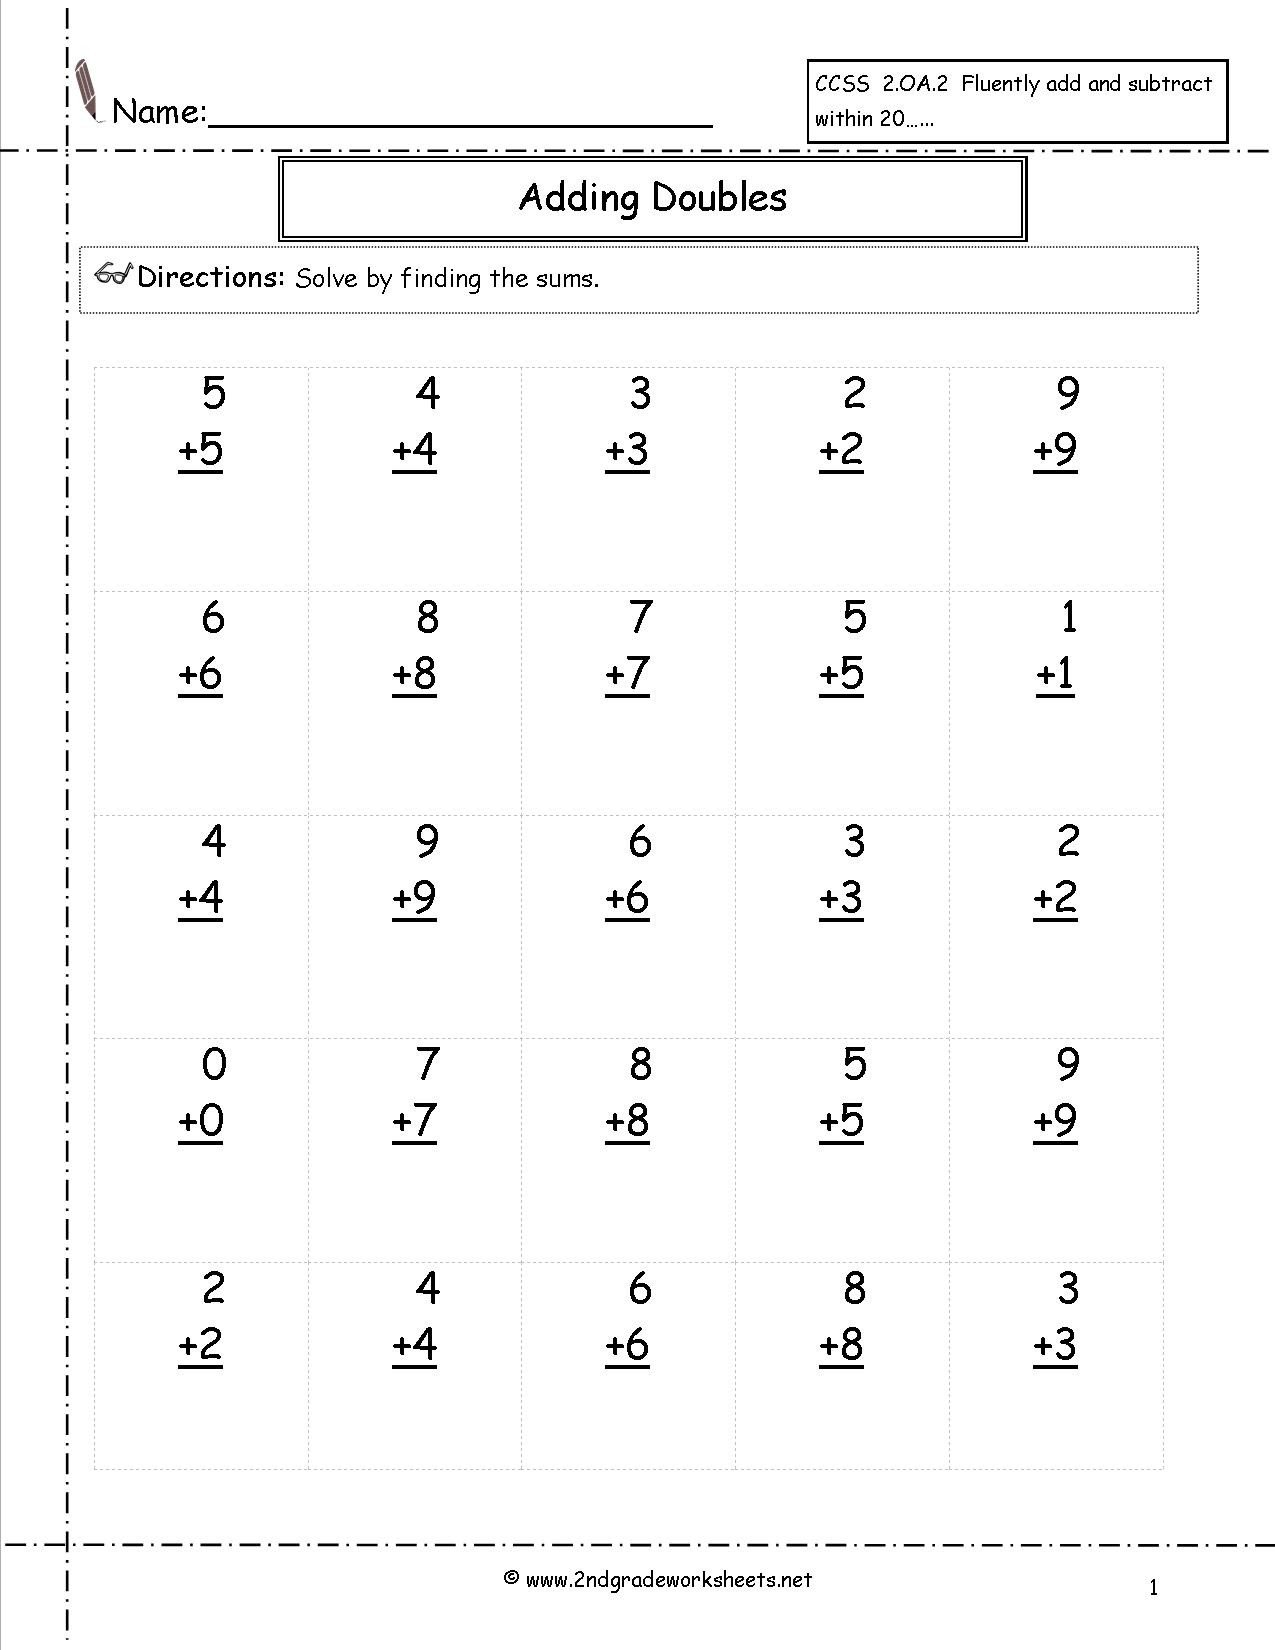 Multiplication Facts Worksheet Generator Free Single Digit Addition Worksheets Basic Facts to Doubles